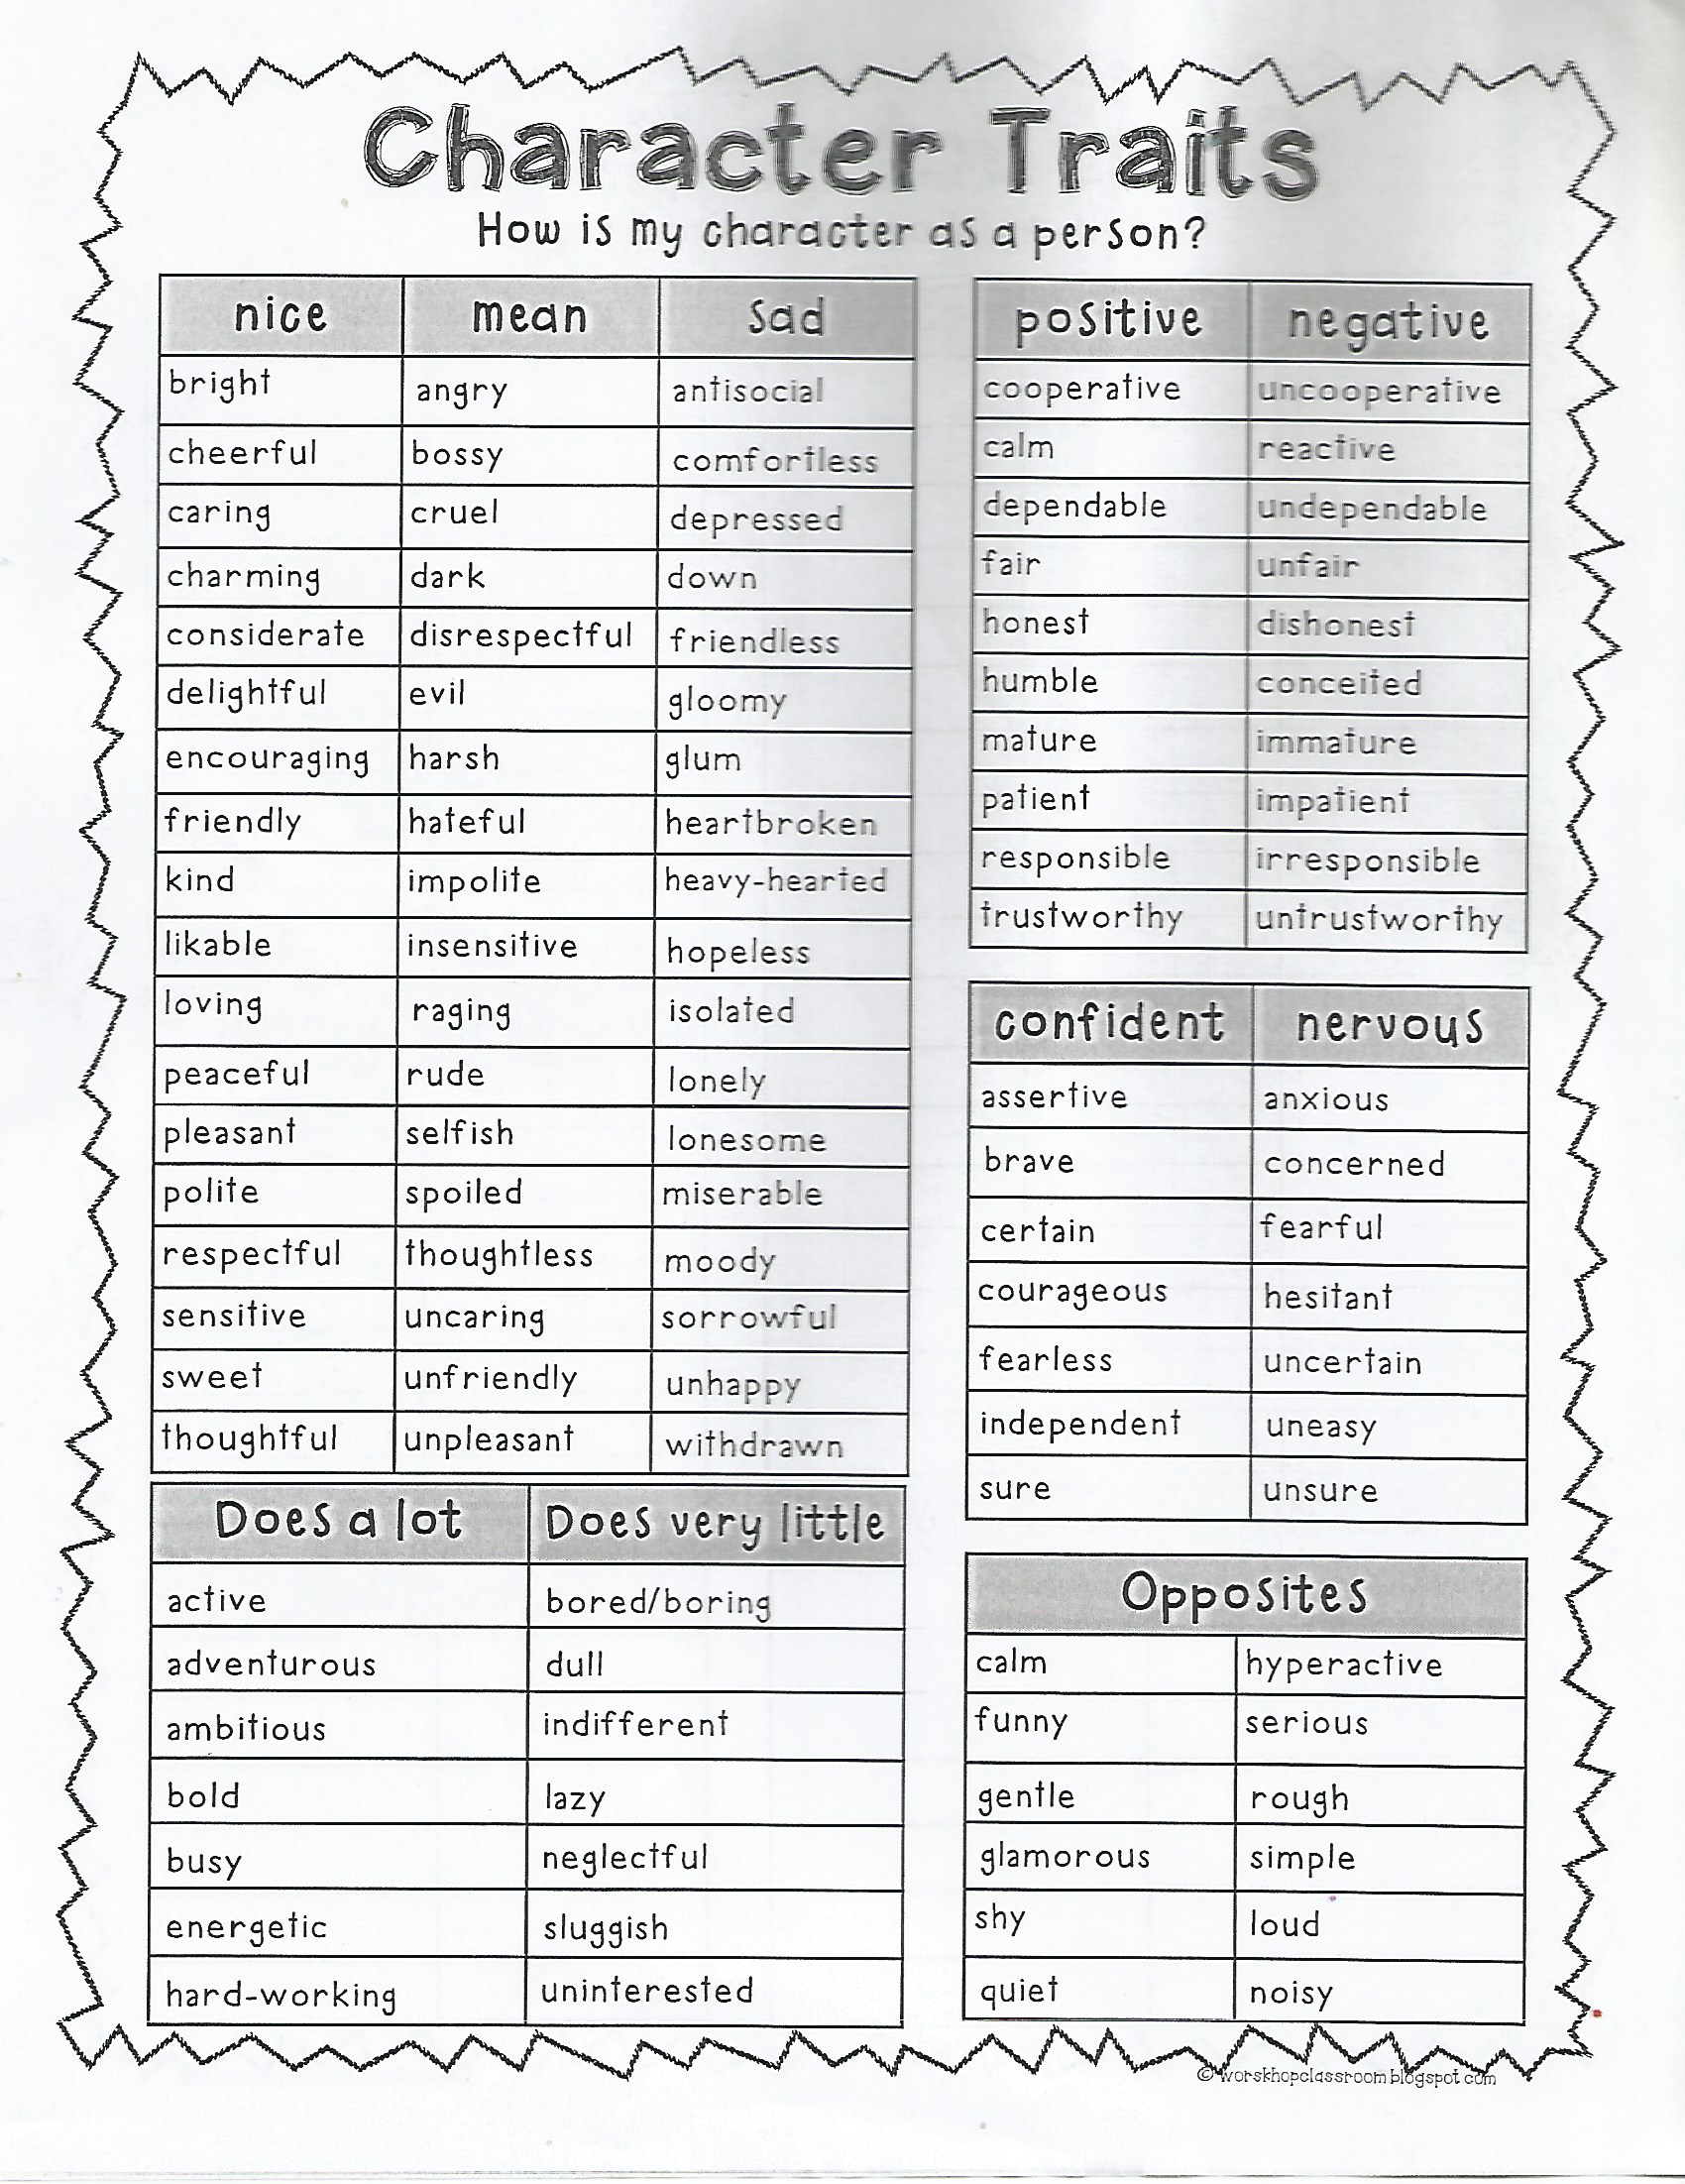 Character Traits Worksheet Answers Character Trait Worksheets Character Trait Positive And Negative [ 2203 x 1700 Pixel ]